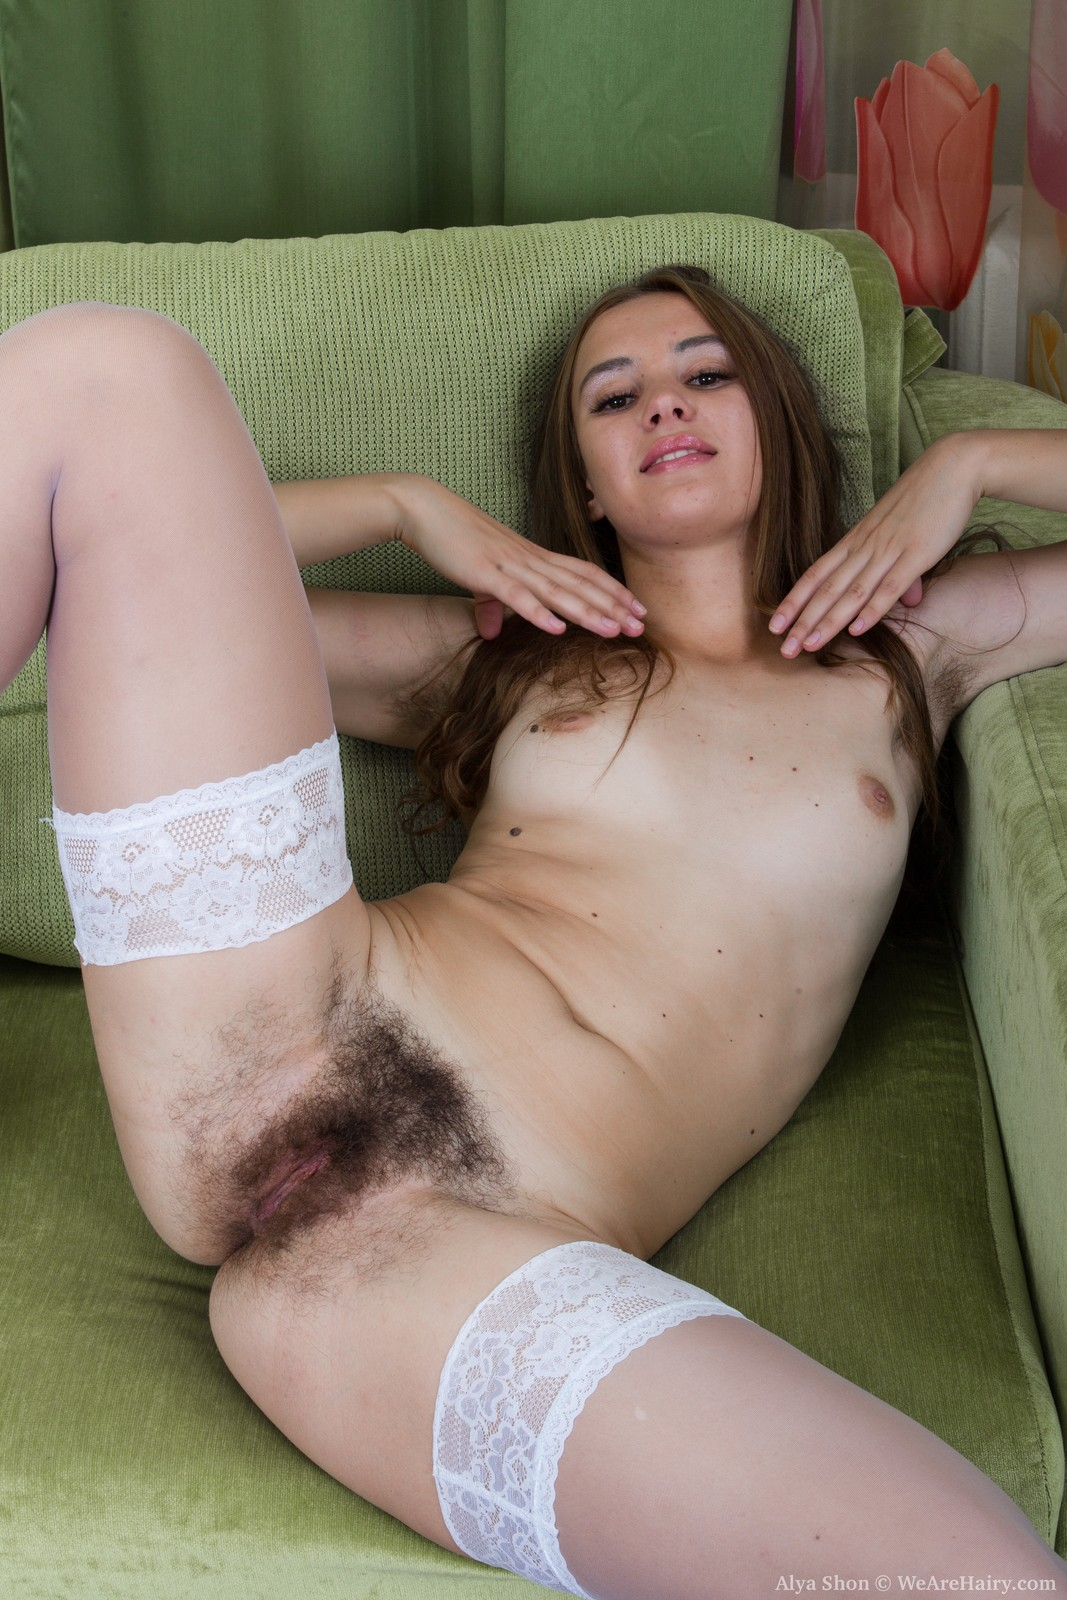 French pussy gallery